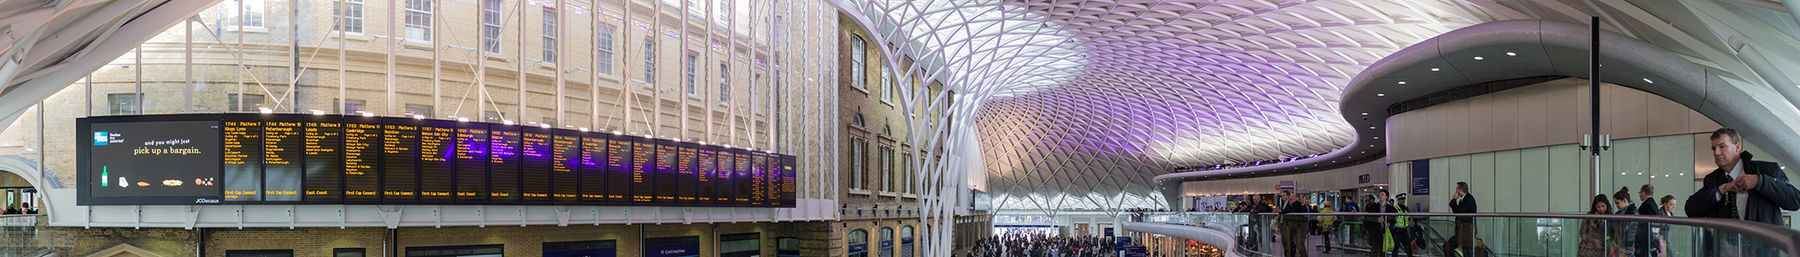 London banner King's Cross Western Concourse.jpg